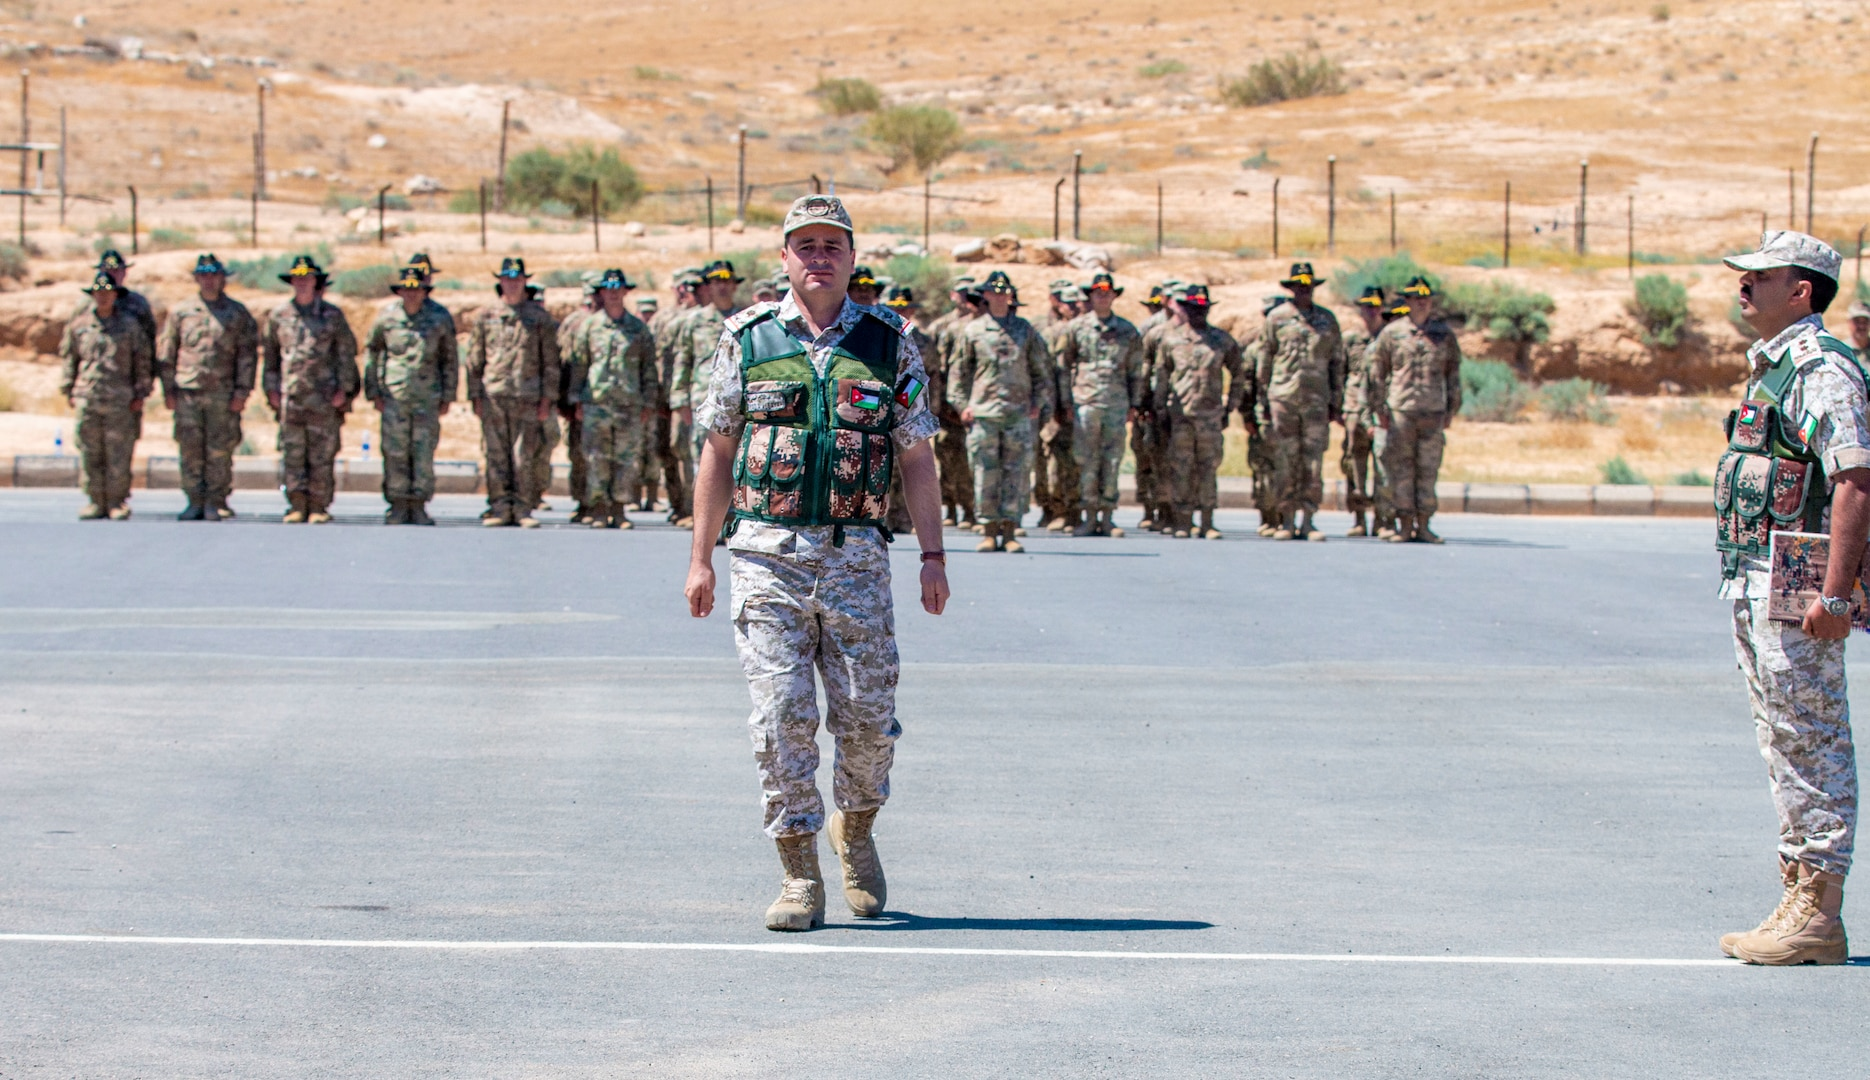 New Jersey National Guard Soldiers, with 1st Squadron, 102nd Calvary Regiment, and Jordan Border Guard Force Soldiers, with the 7th Mechanized Battalion, 48th Mechanized Brigade, participate in the Jordan Operational Engagement Program (JOEP) opening ceremony July 14, 2019. JOEP is a 14-week individual and collective training, as well as a military partnership between Jordan and America.